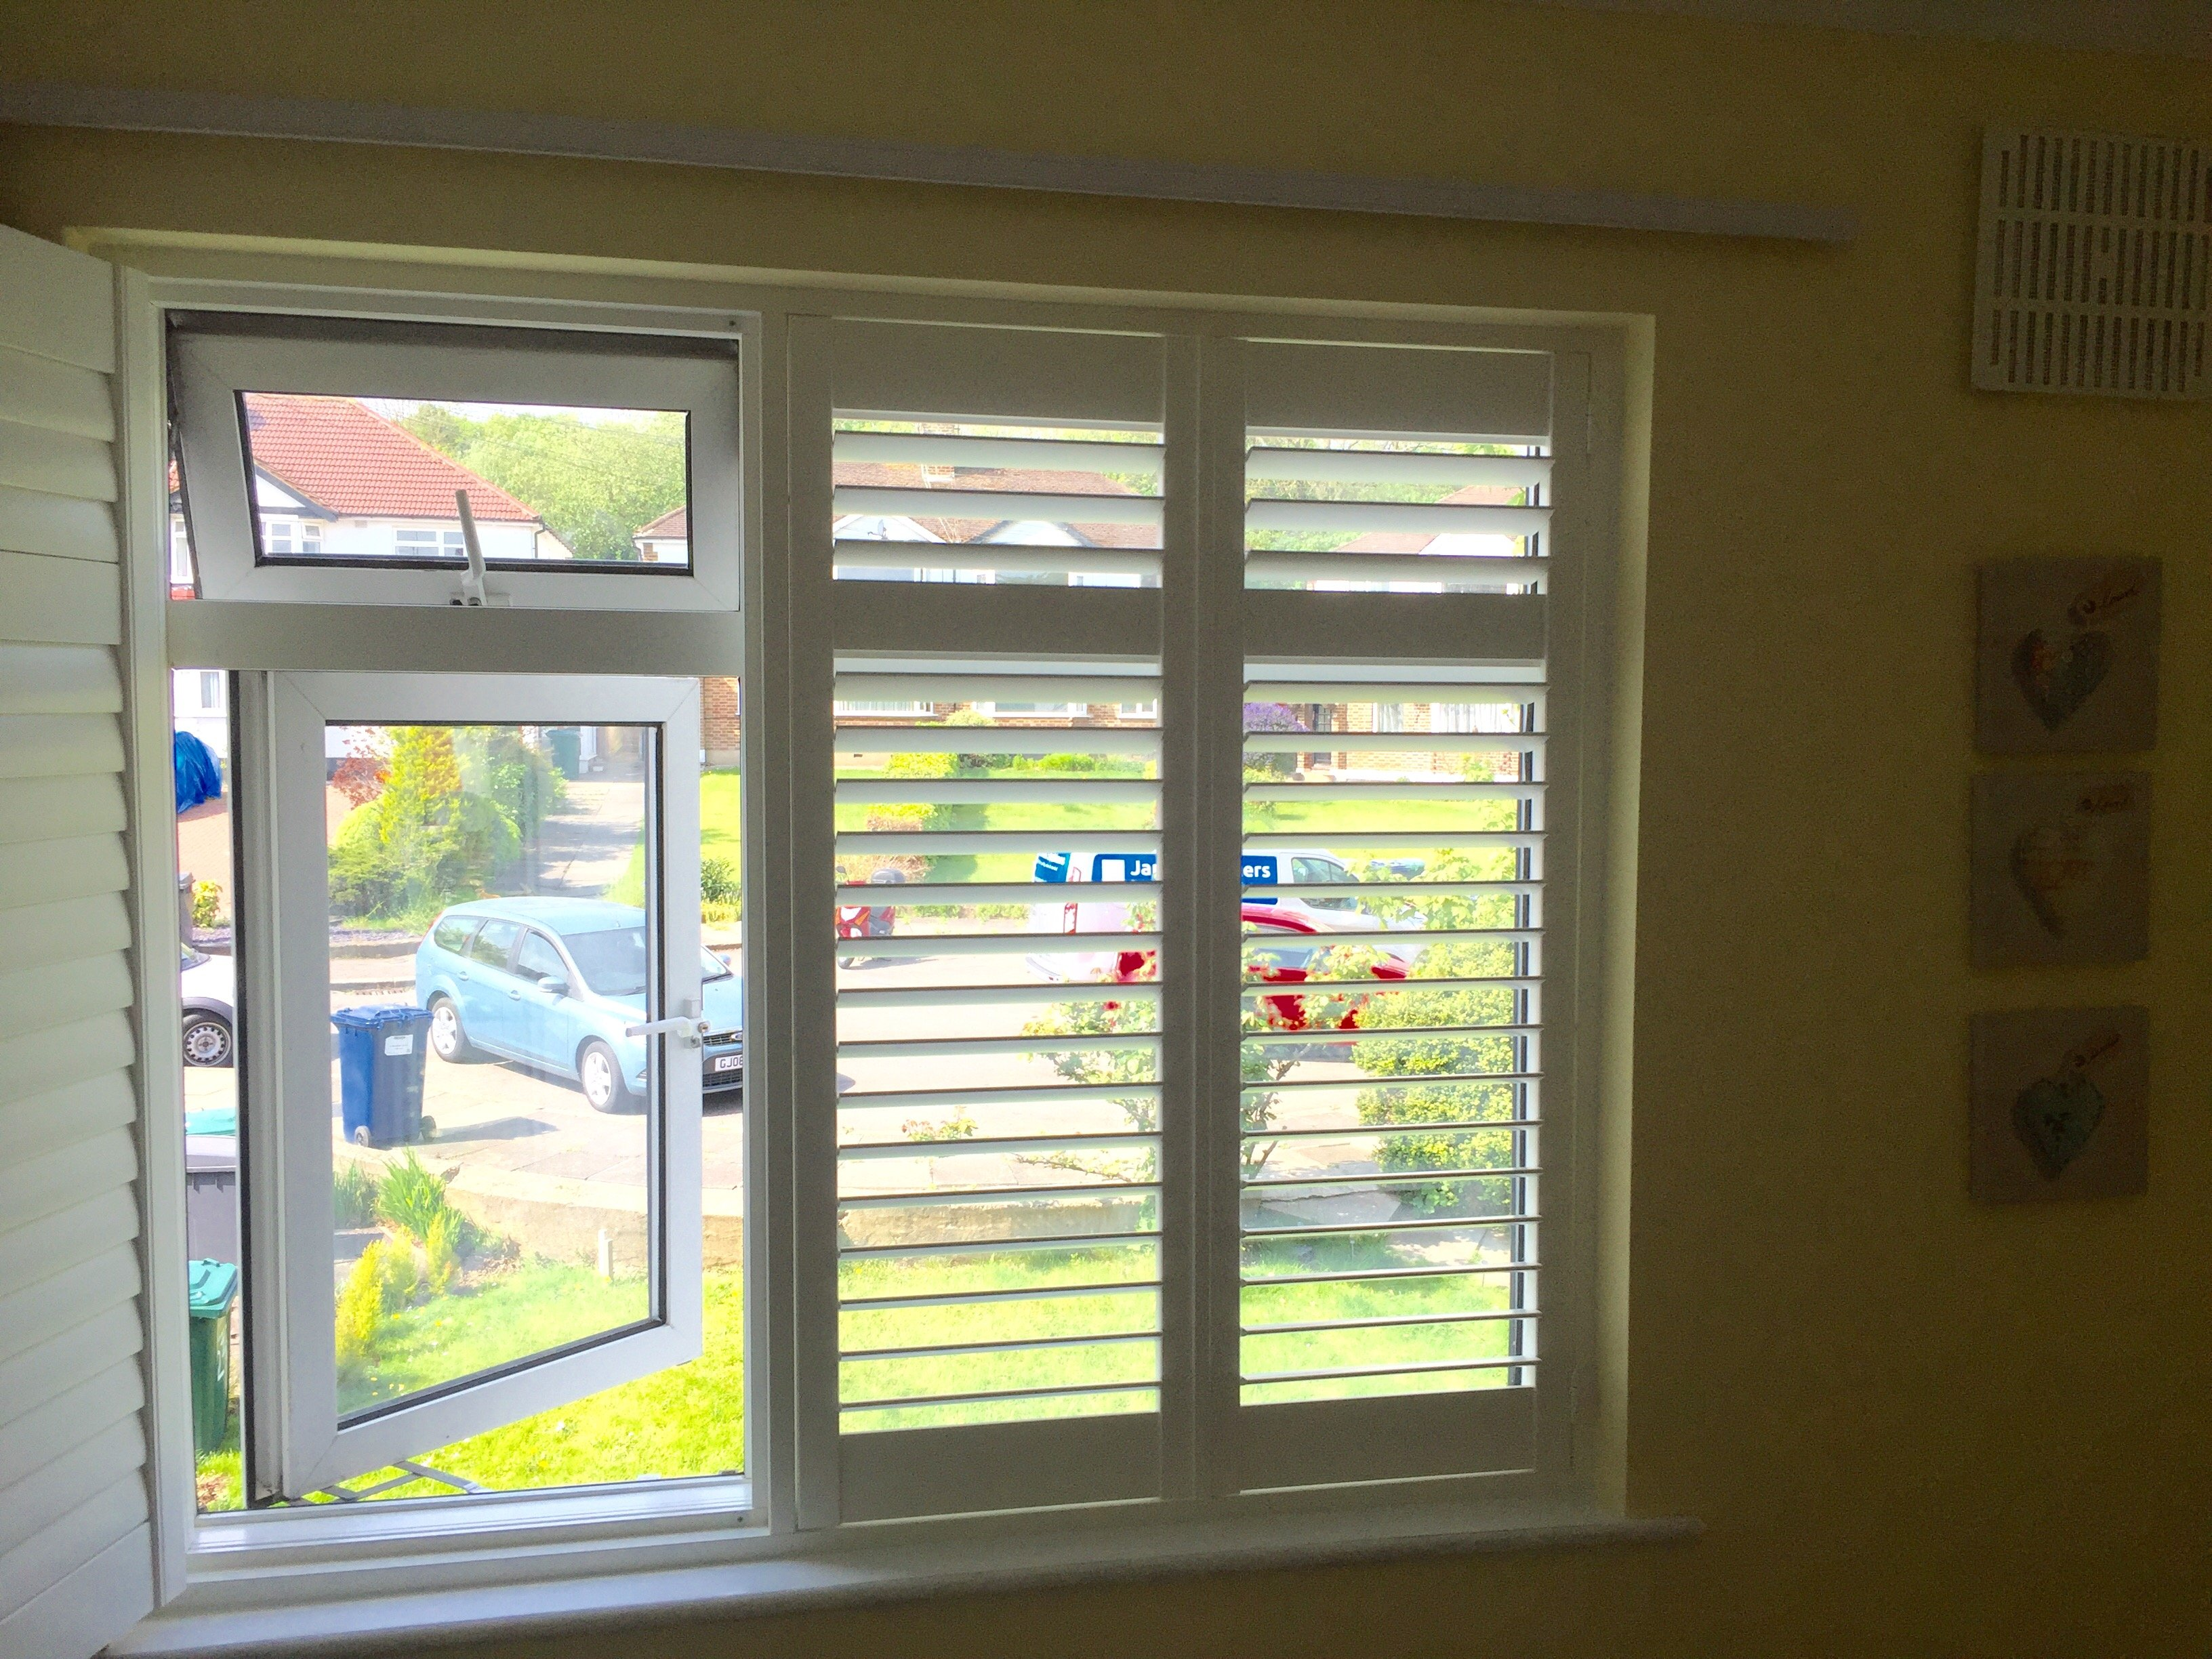 Full height Window Shutter on bedroom window with shutter pulled back to show open window and garden